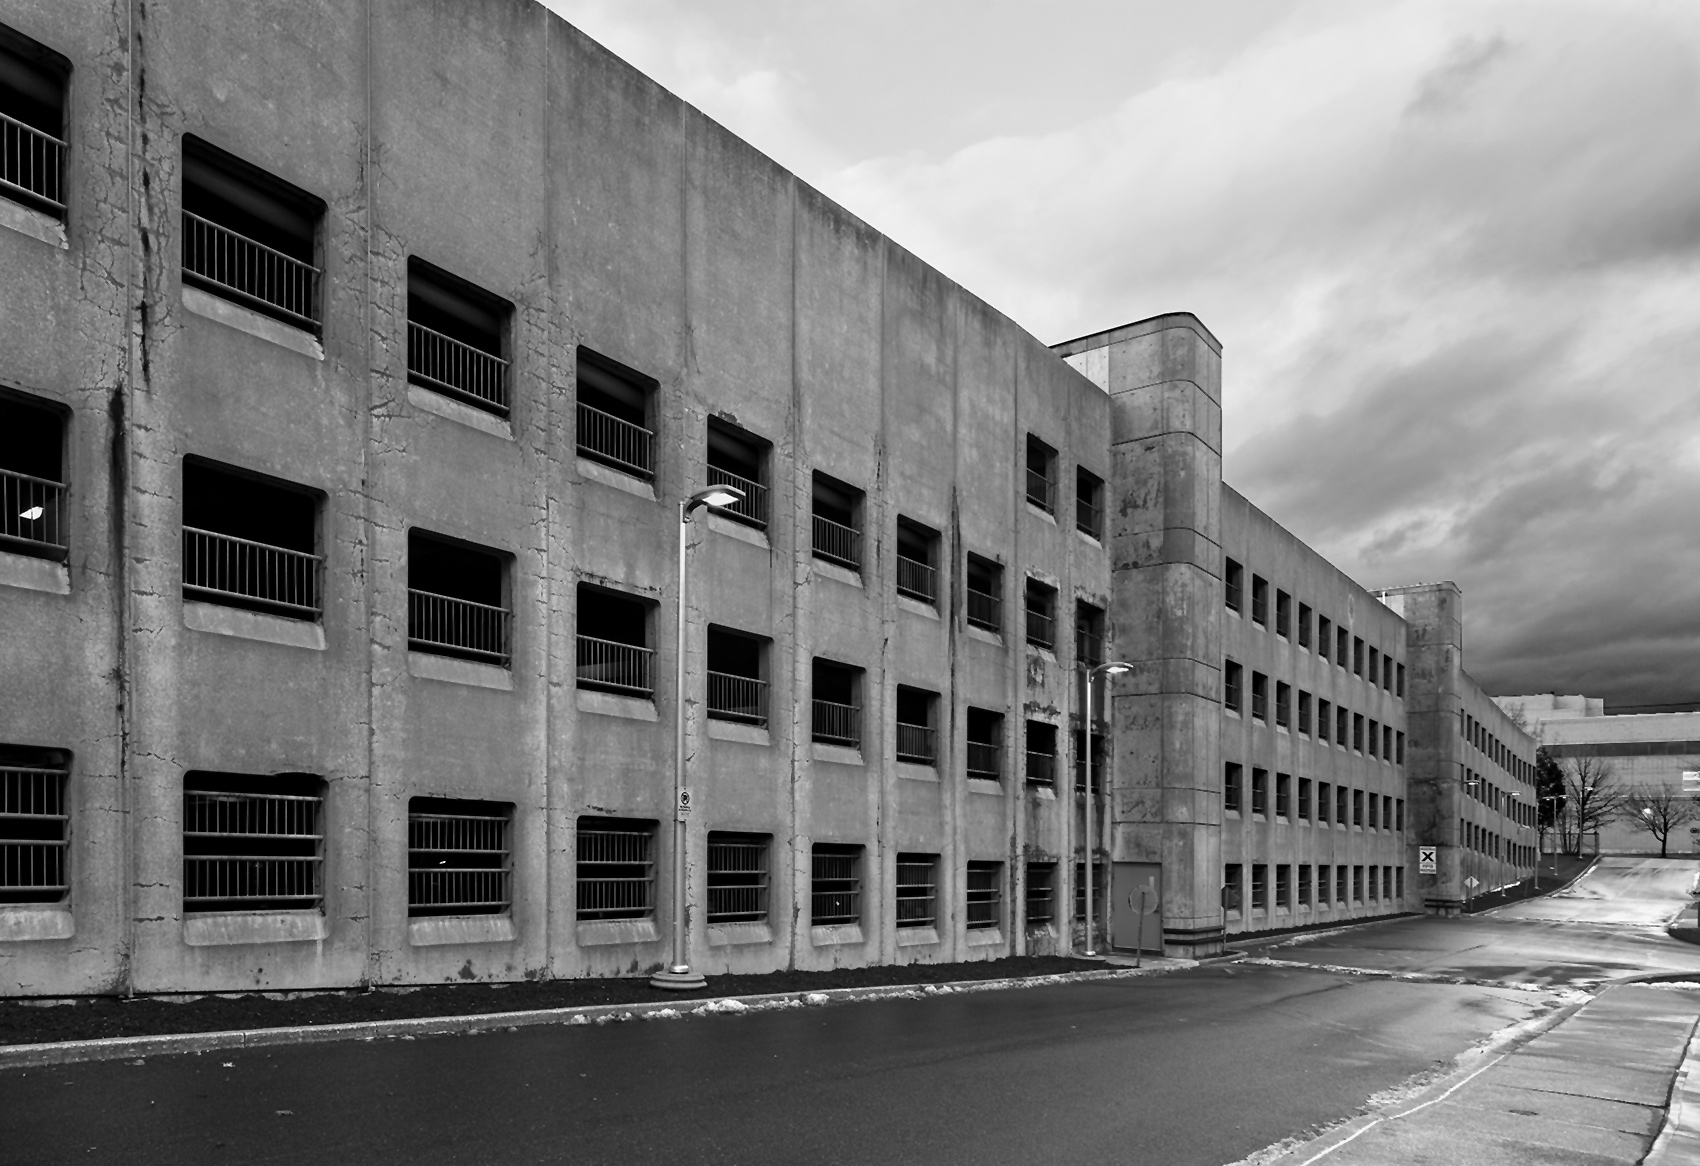 20150407. A massive concrete parkade stretches into the distance